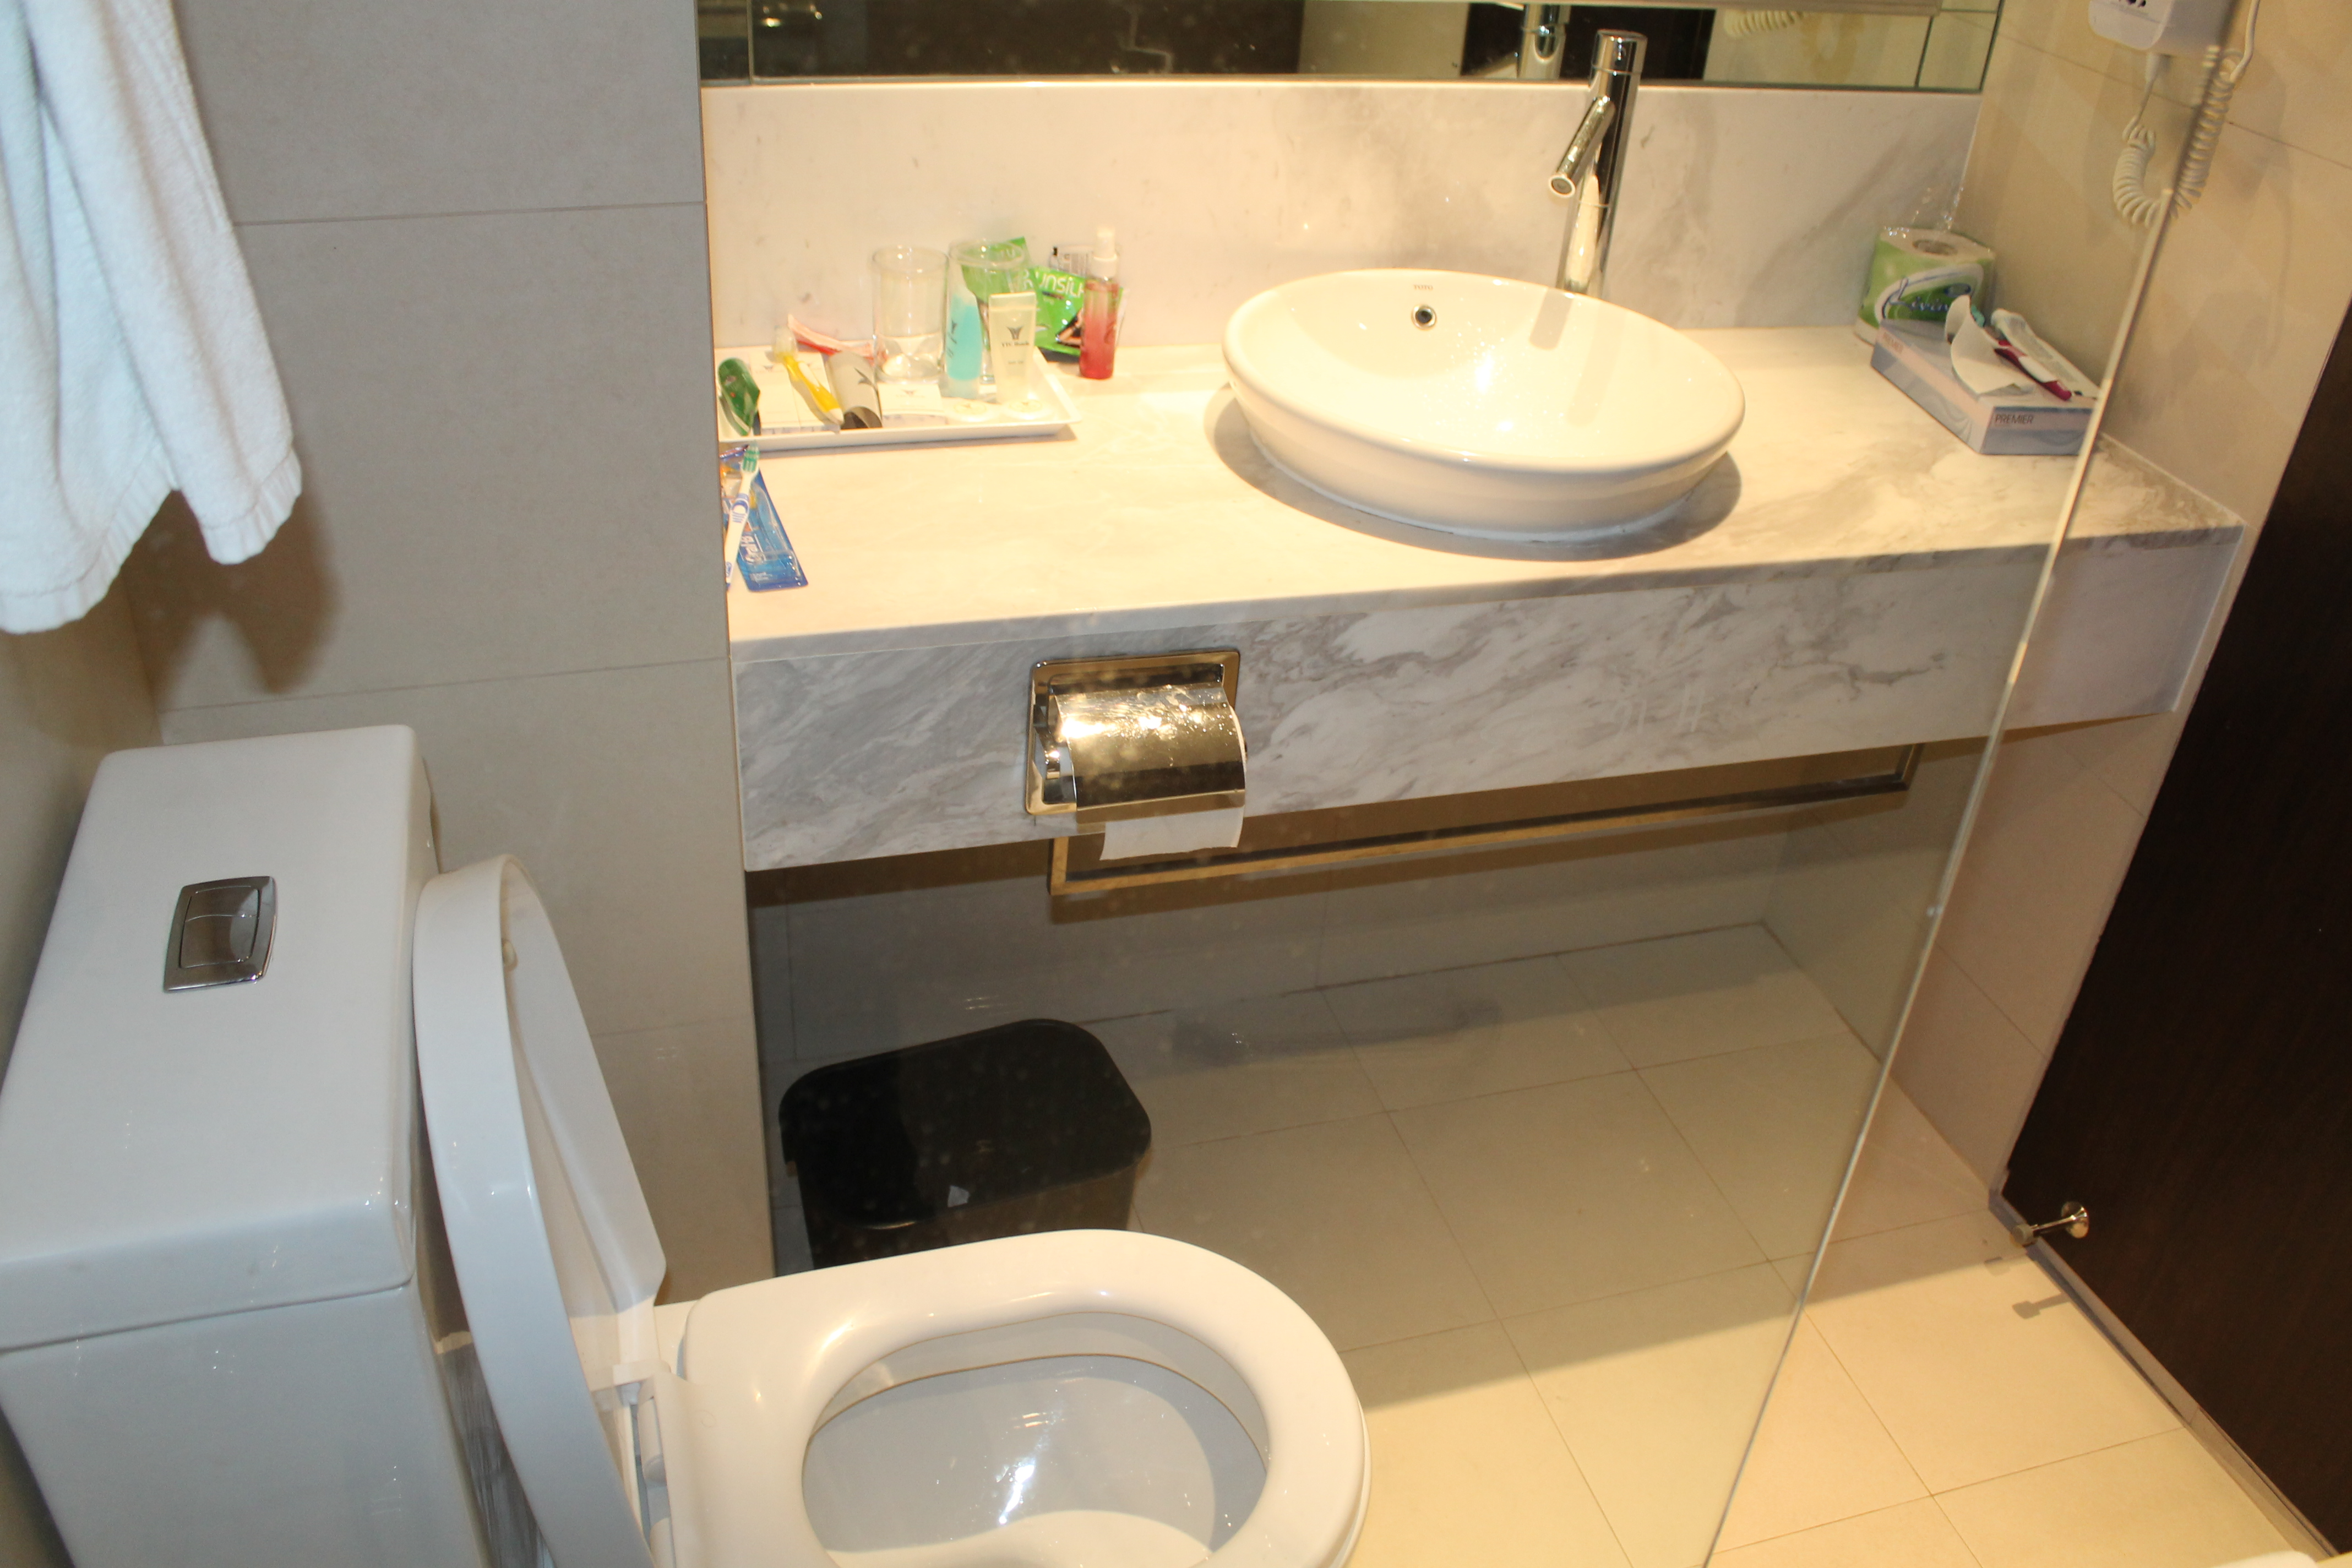 Peninsula excelsior hotel singapore the safari street by mj for Bathroom sink singapore